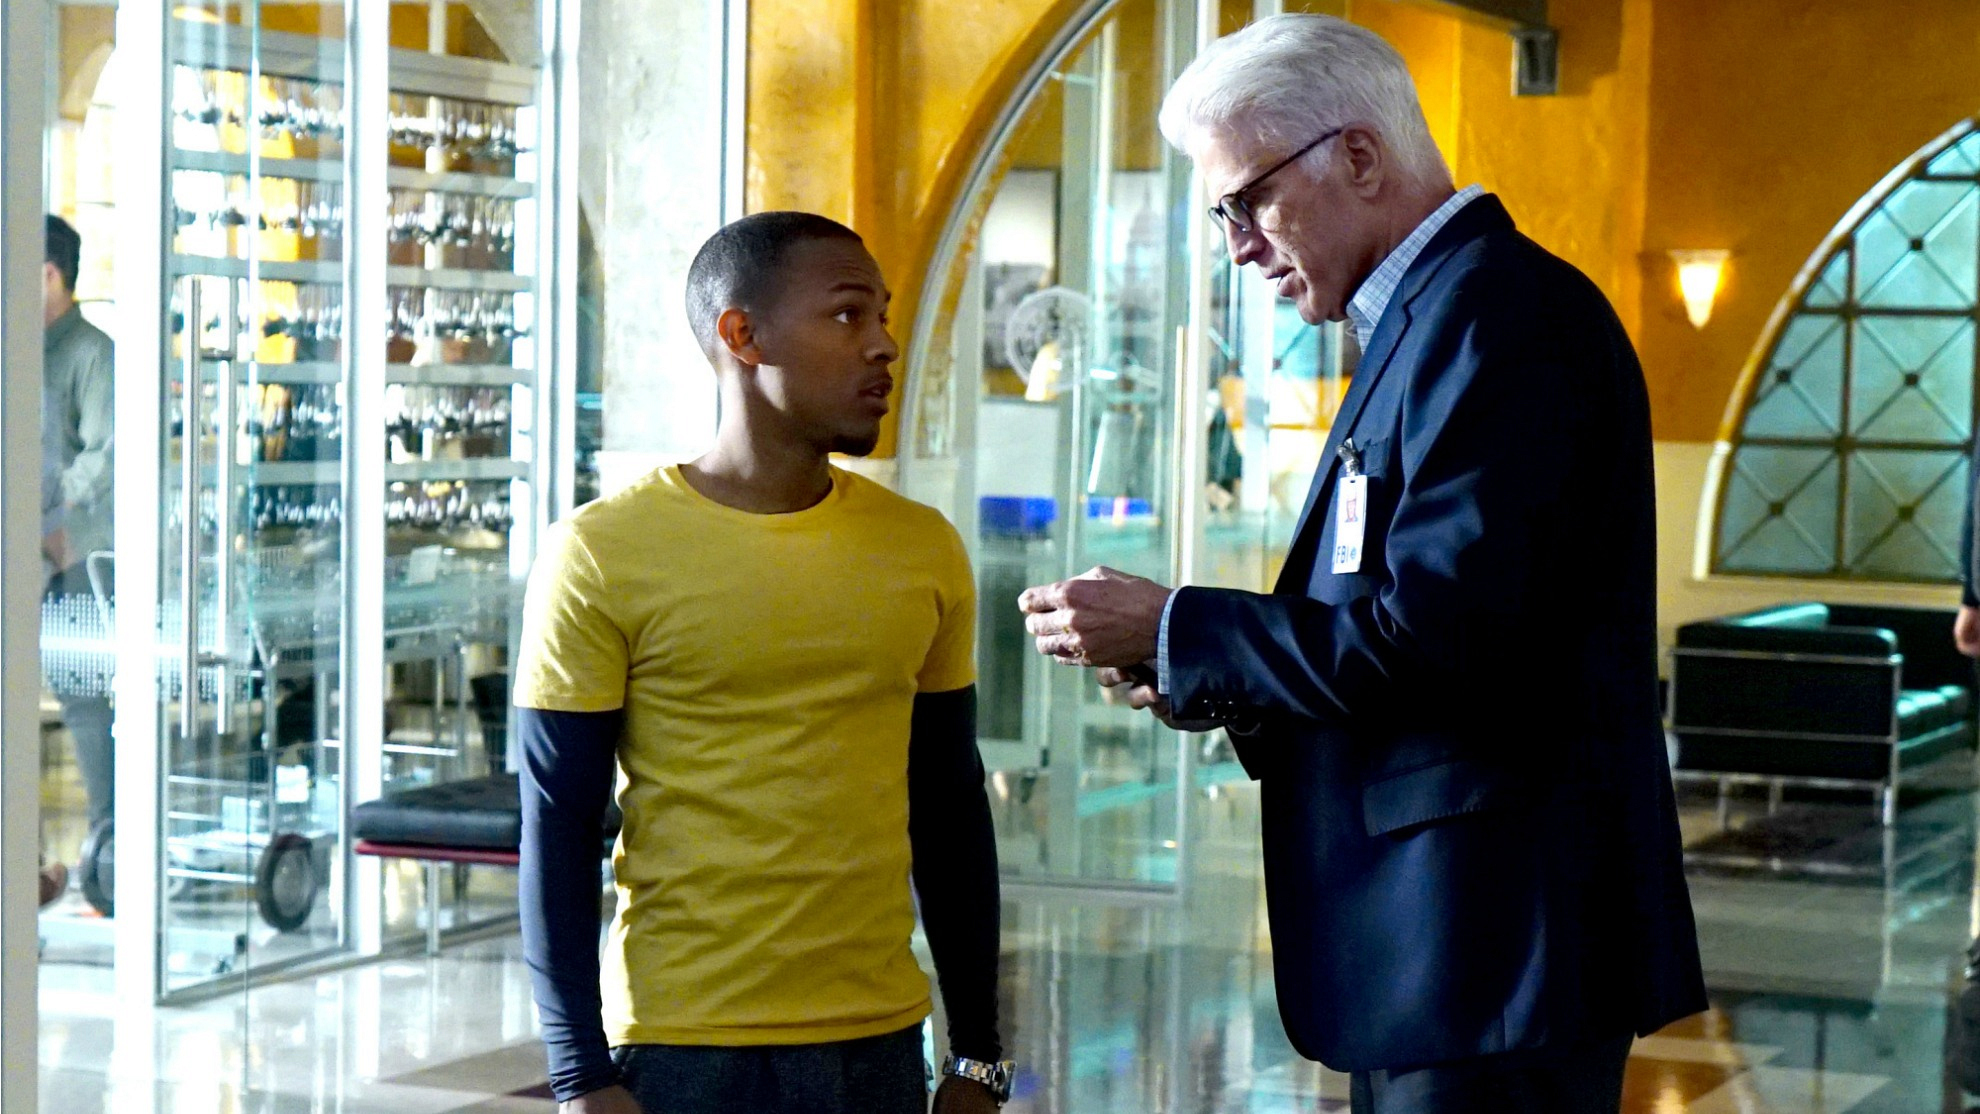 Shad Moss as Brody Nelson and Ted Danson as D.B. Russell